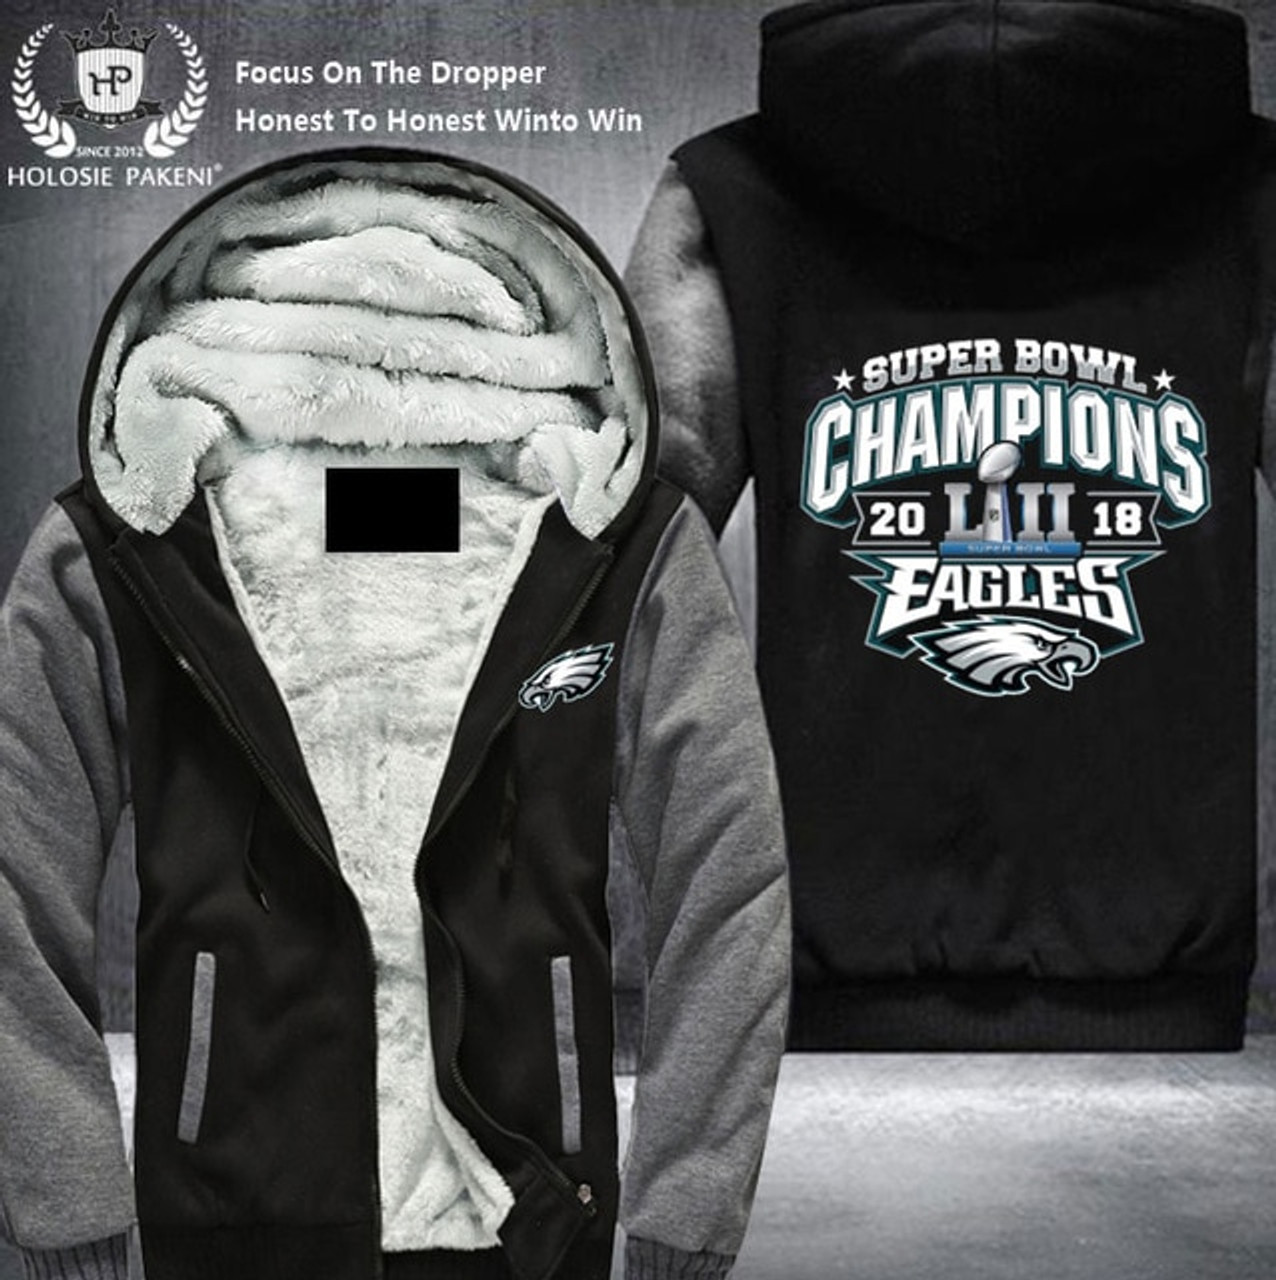 new arrivals 916dd a938c **(OFFICIALLY-LICENSED-N.F.L.PHILADELPHIA-EAGLES/SUPER-BOWL-LII-CHAMPIONS-FLEECE-ZIPPERED-HOODIES  & OFFICIAL-SUPER-BOWL-TEAM-LOGOS/NICE-CUSTOM-3D-GRAP...